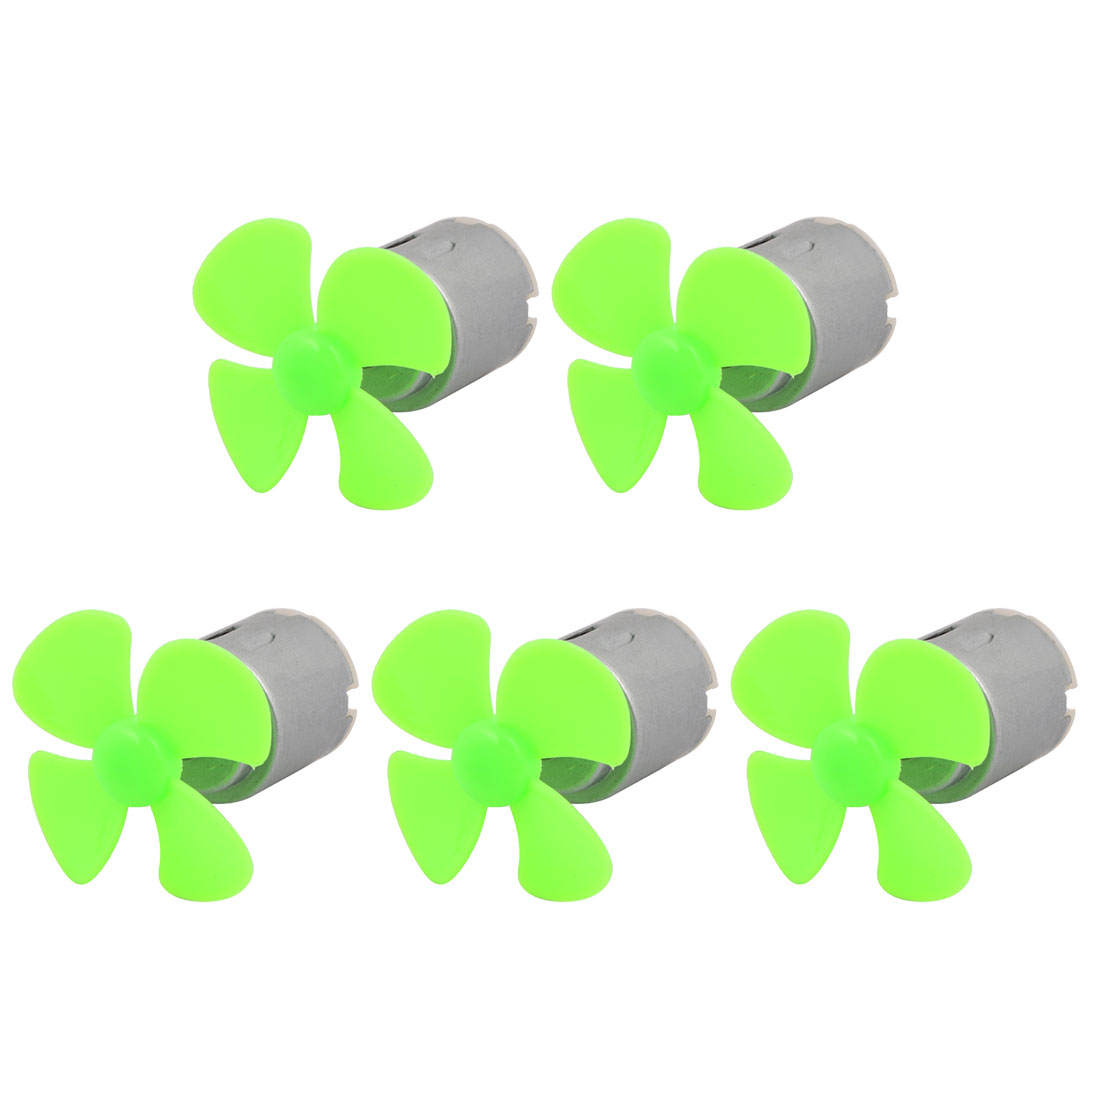 5Pcs DC 5V 8500RPM Large Torque Motor 4-Vane 40mm Dia Propeller Green for RC Model